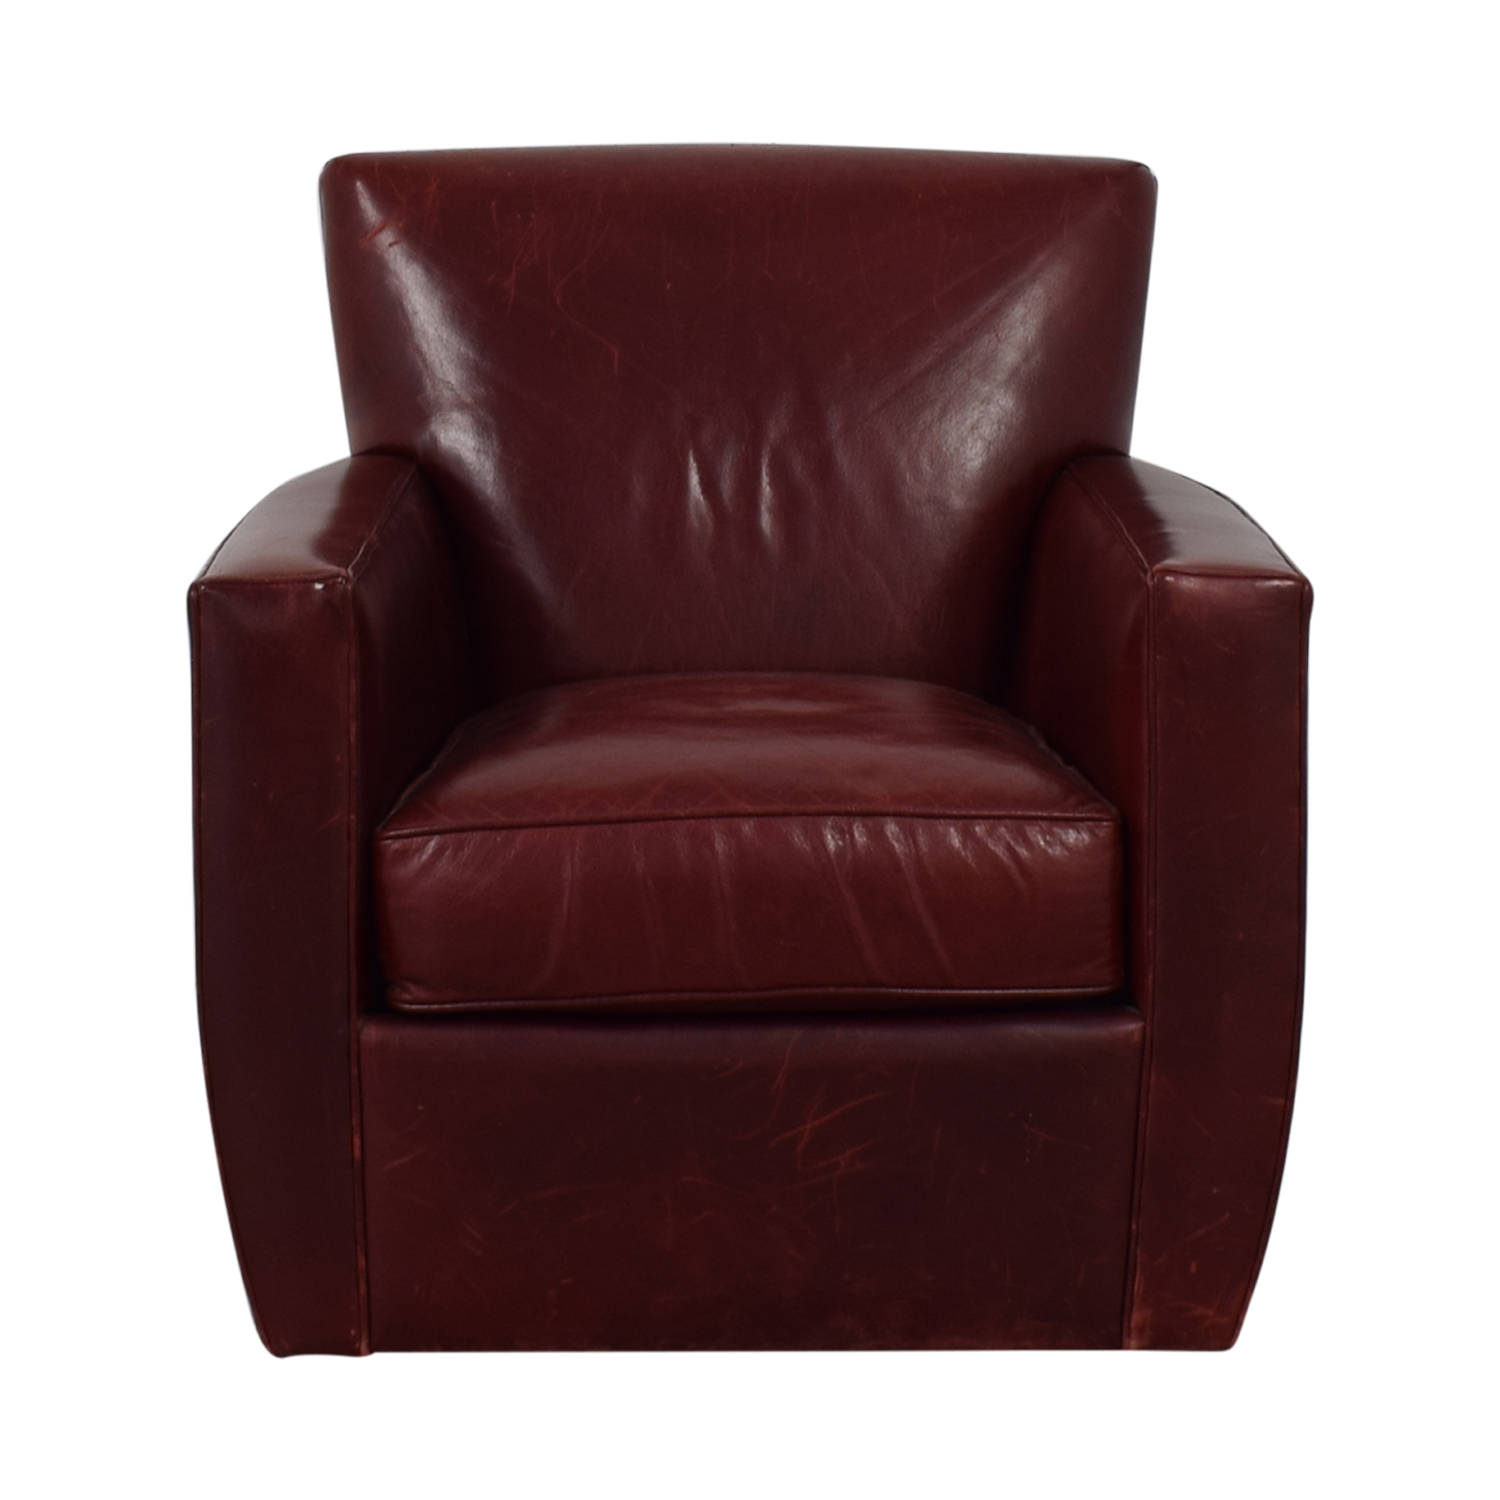 Charmant 84% OFF   Crate U0026 Barrel Crate U0026 Barrel Swivel Red Accent Chair / Chairs